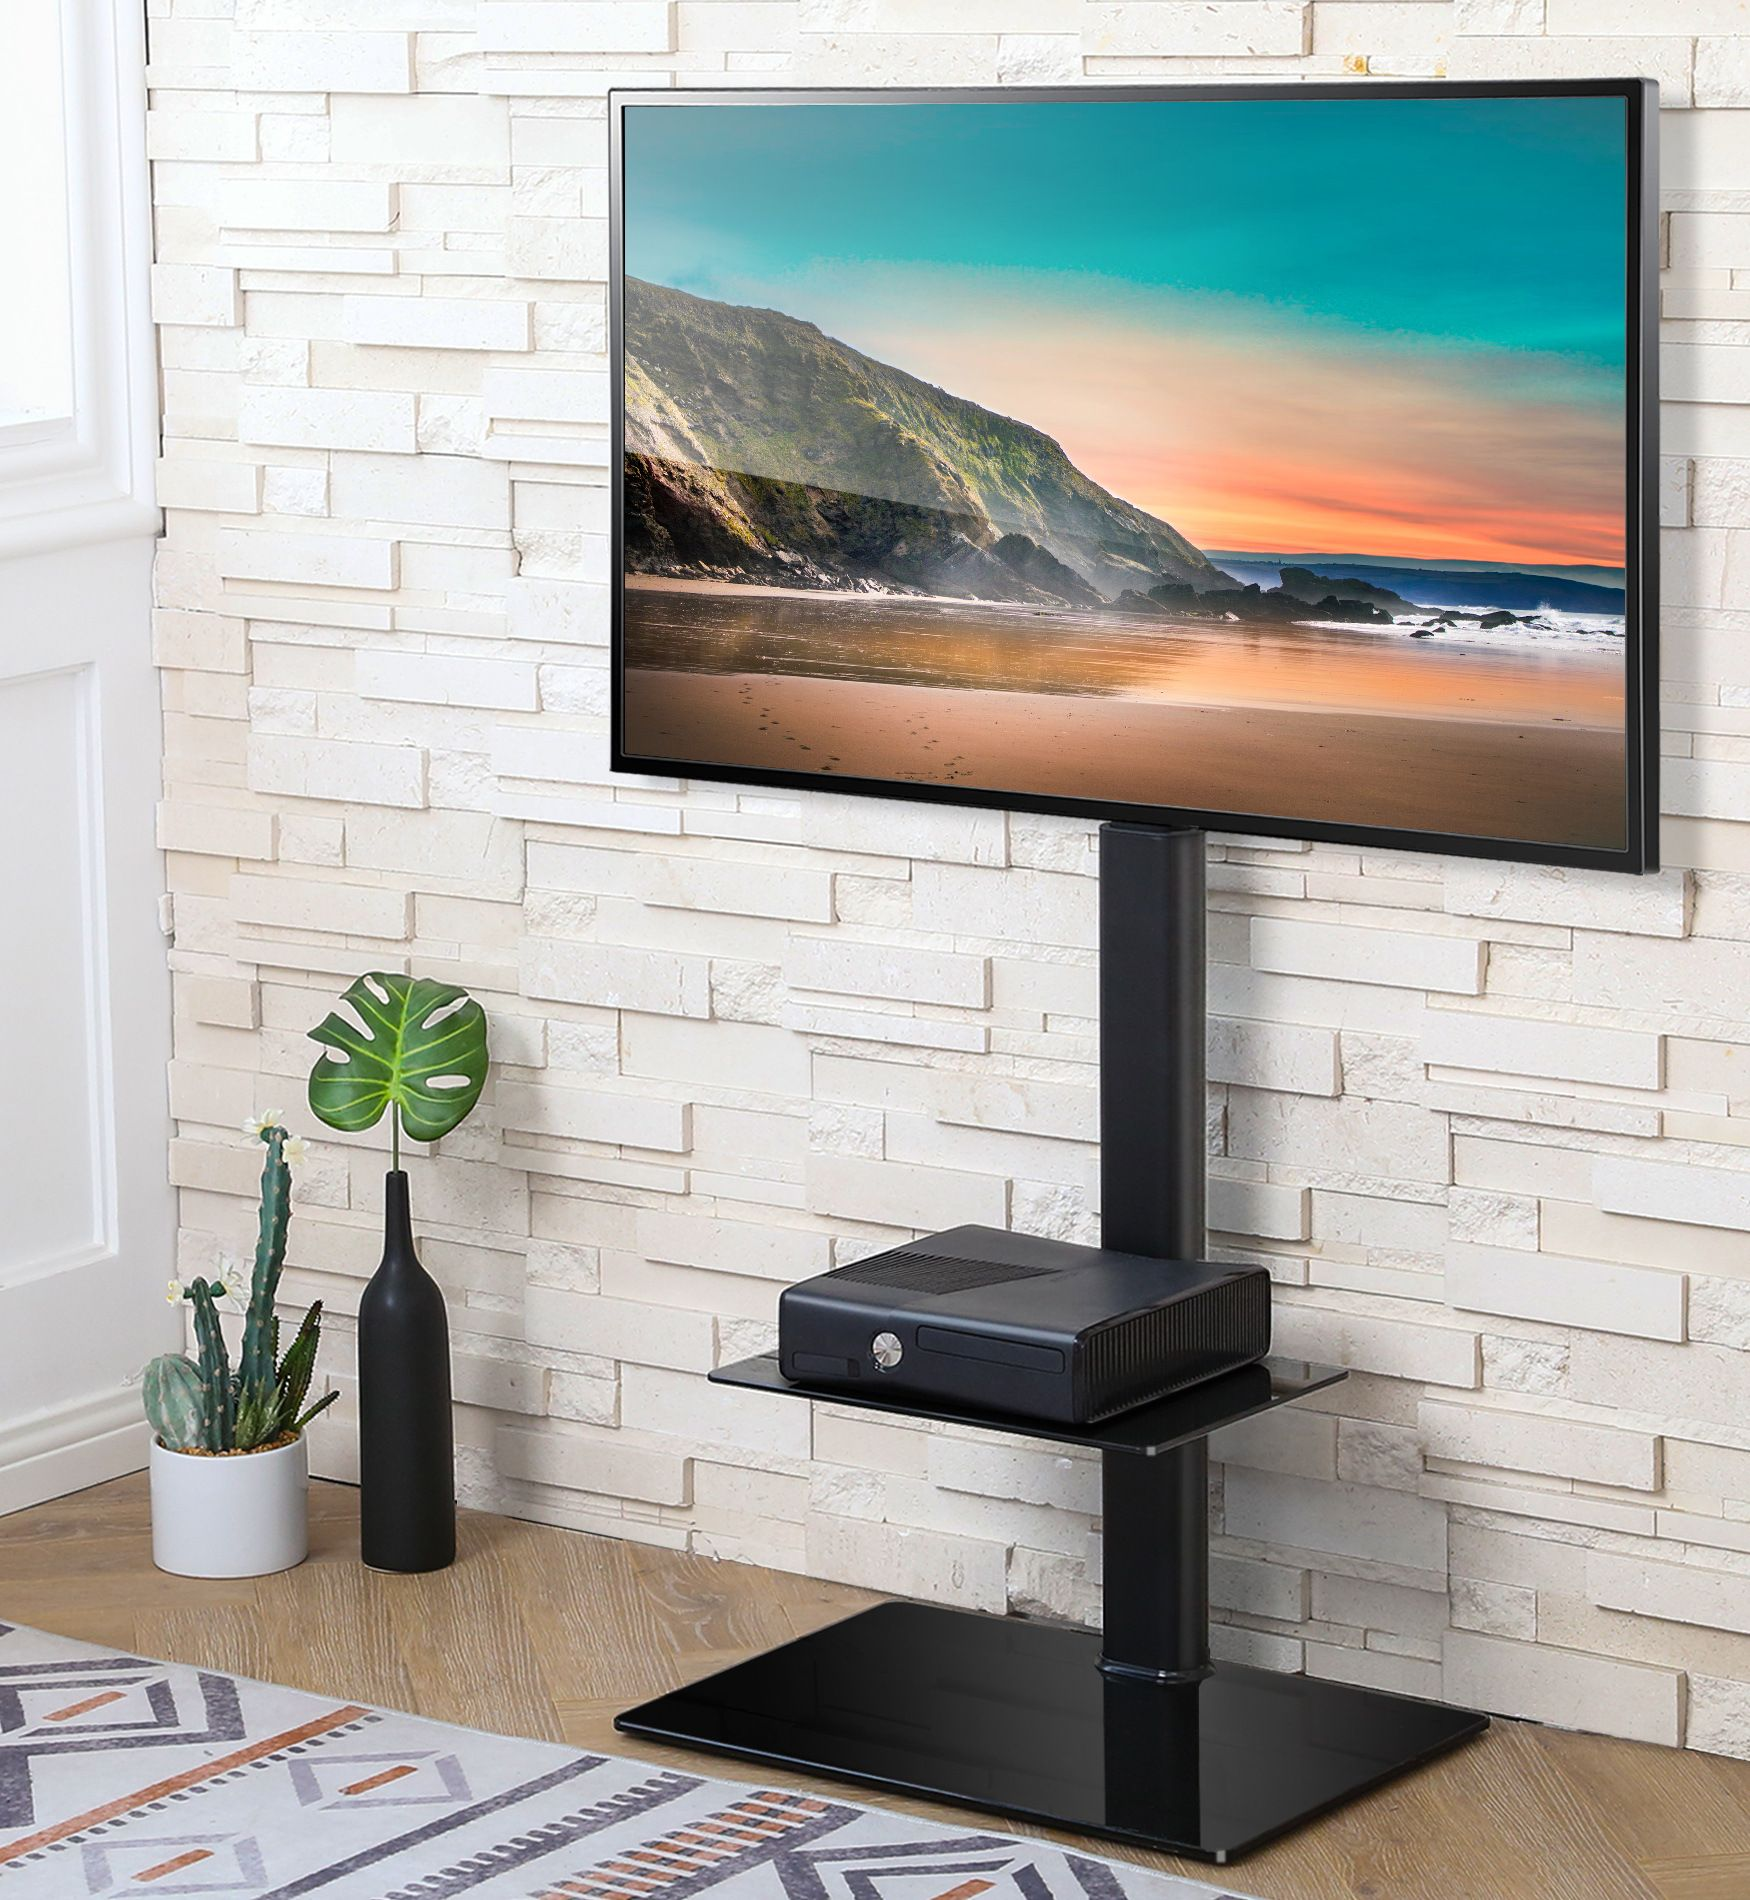 Fitueyes Height Adjustable Black Floor Tv Stand For Tvs Up To 65 With Swivel Mount Tt206001gb Walmart Com Tv Stand Height Adjustable Black Floor